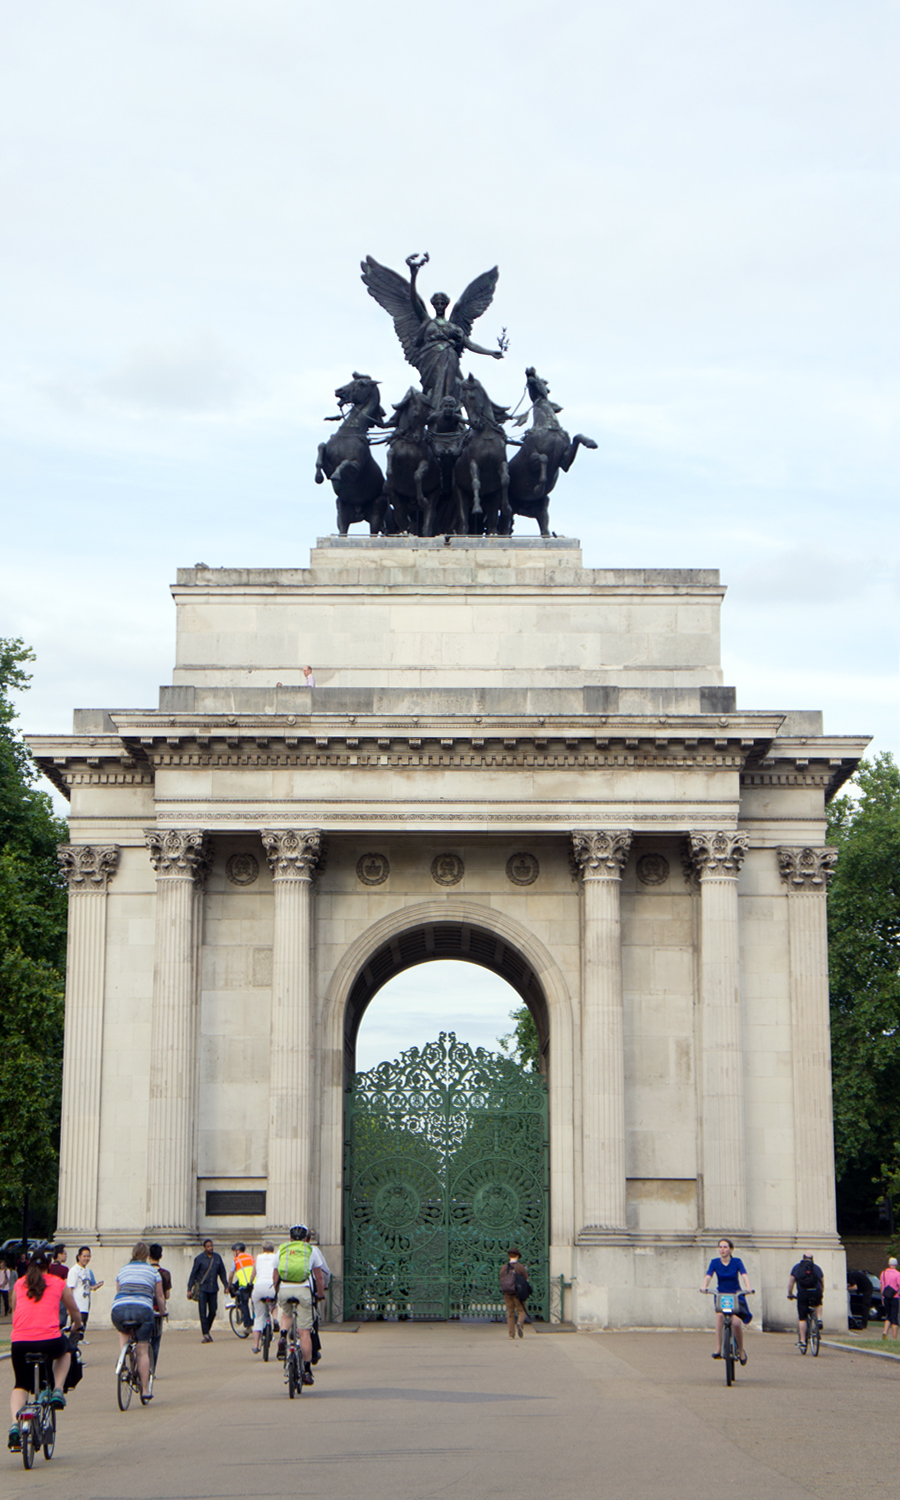 2014-wellington-arch-london-uk-01